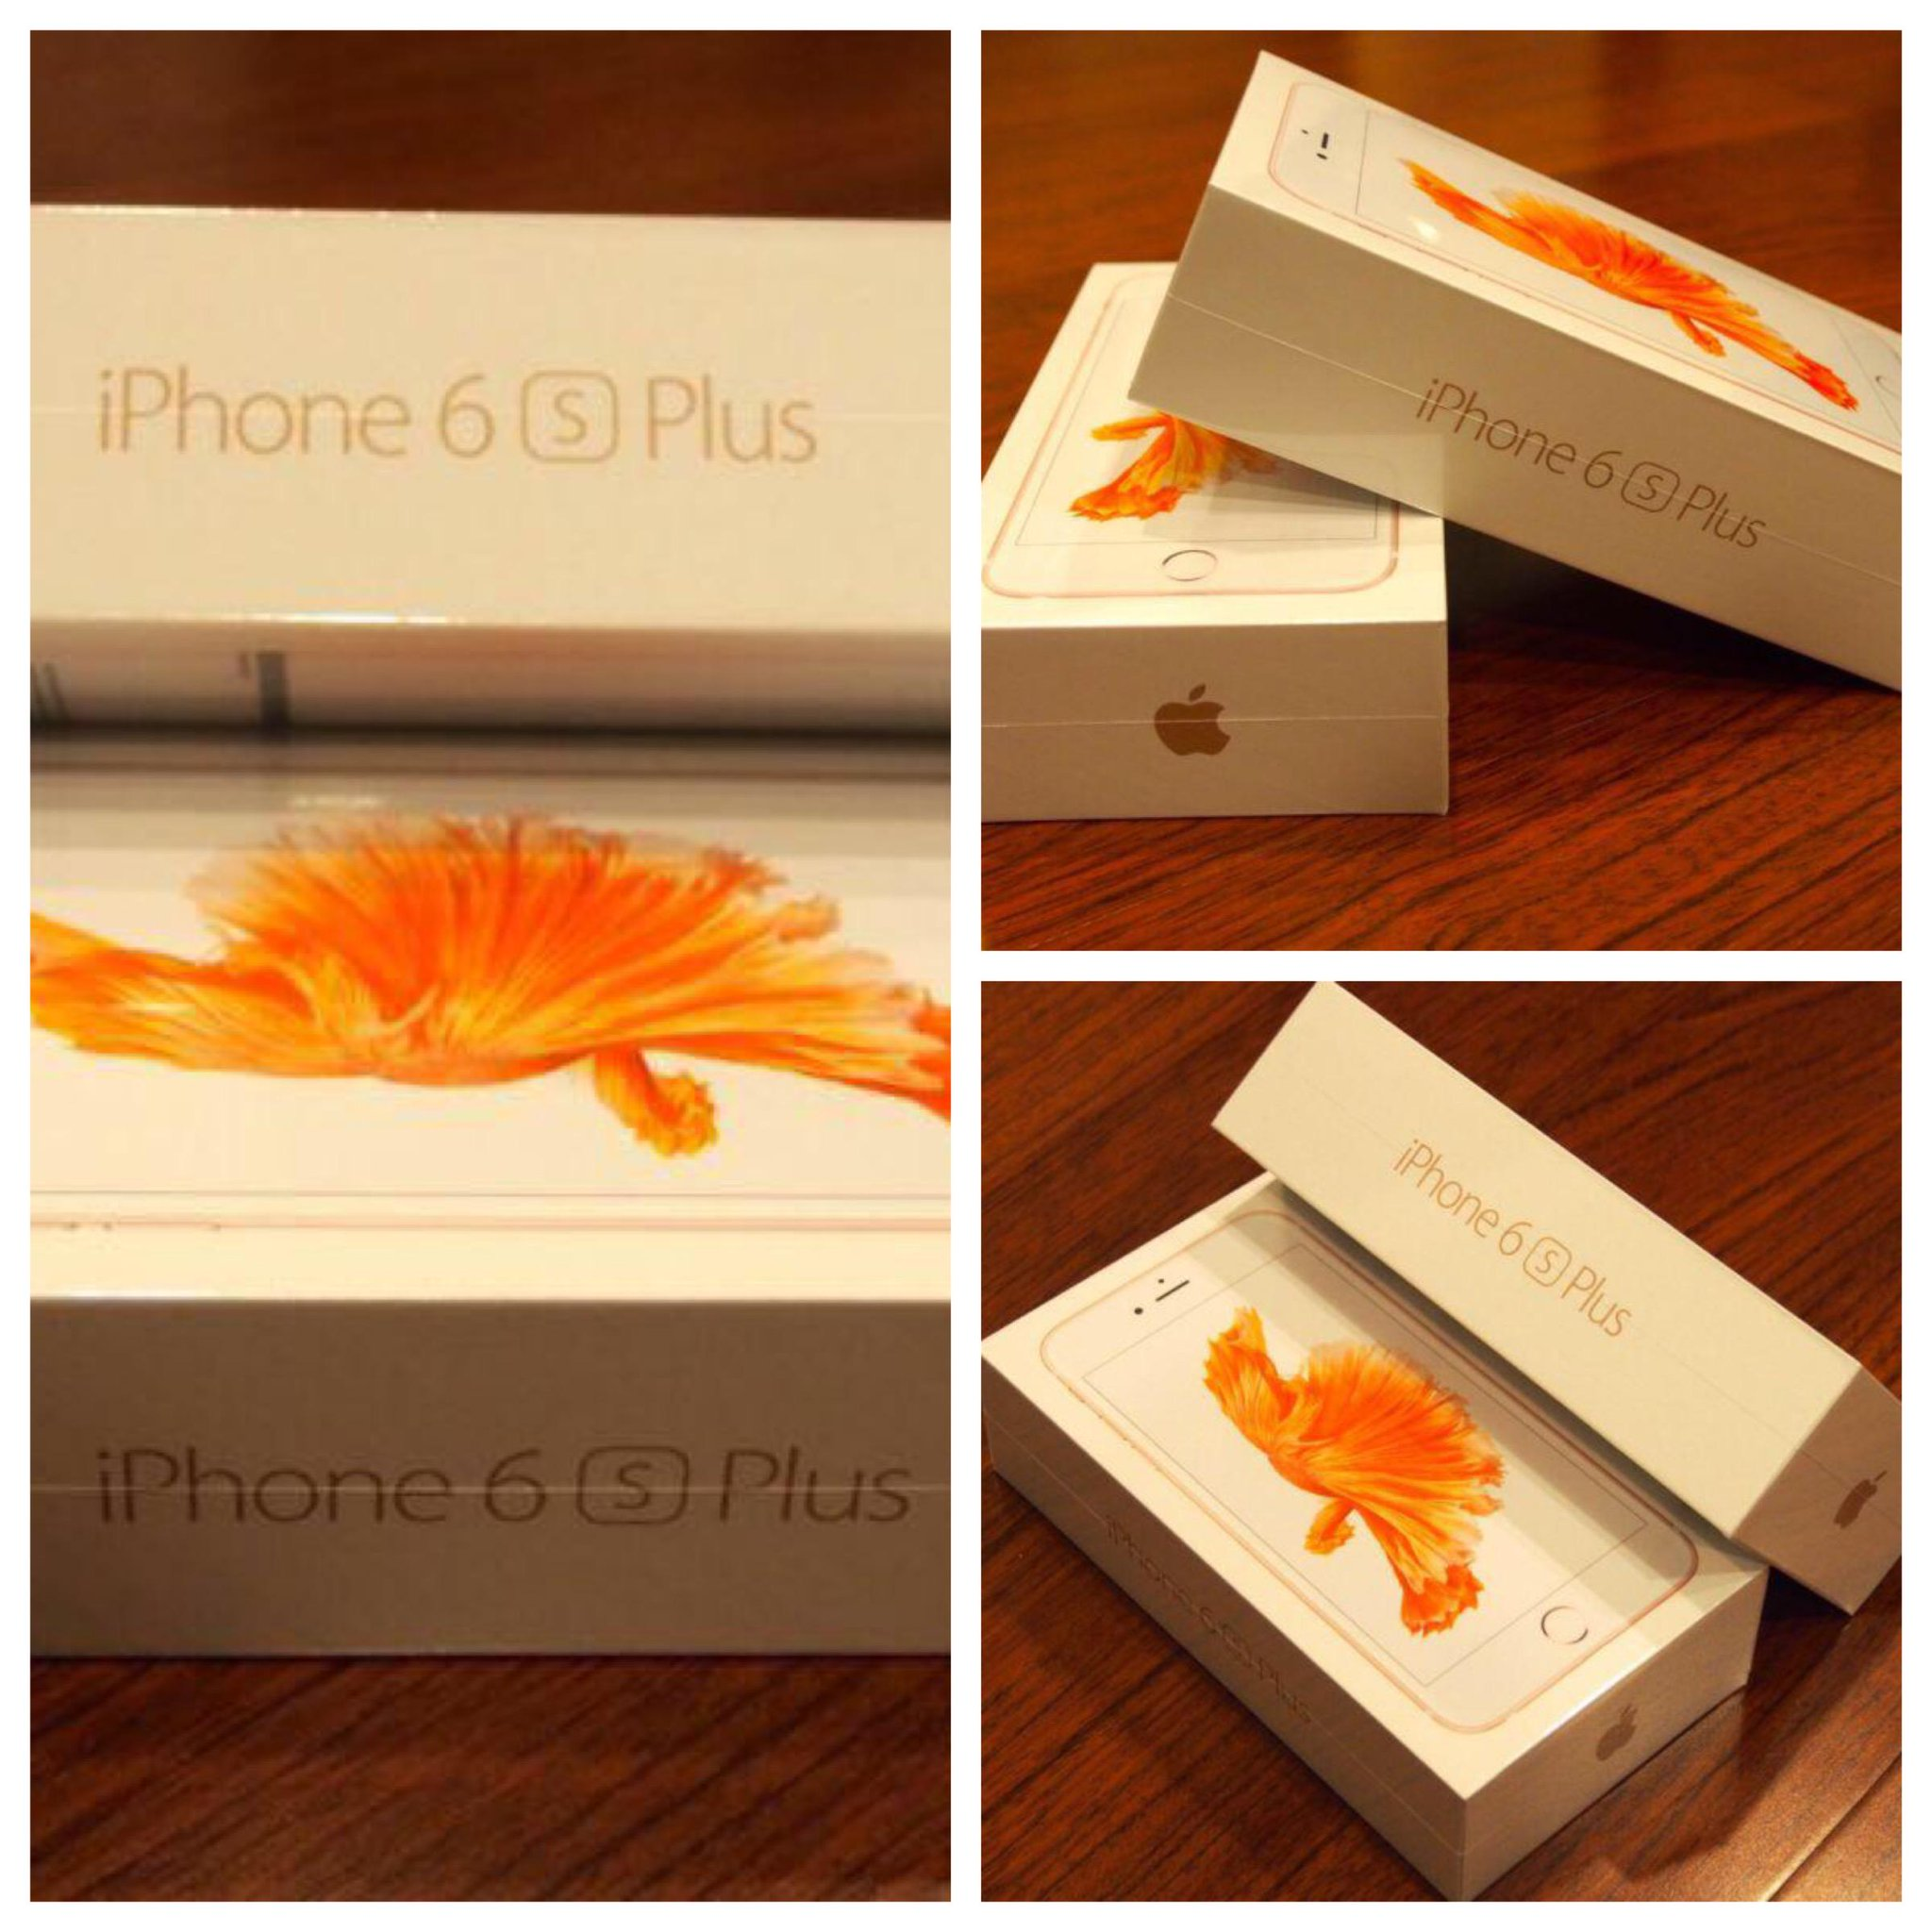 RT @flawlessfox: I'm giving away an iPhone 6S Plus. Retweet and follow to win…. #Apple #iPhone6sPlus #Honest http://t.co/IeQ1EWUFRG